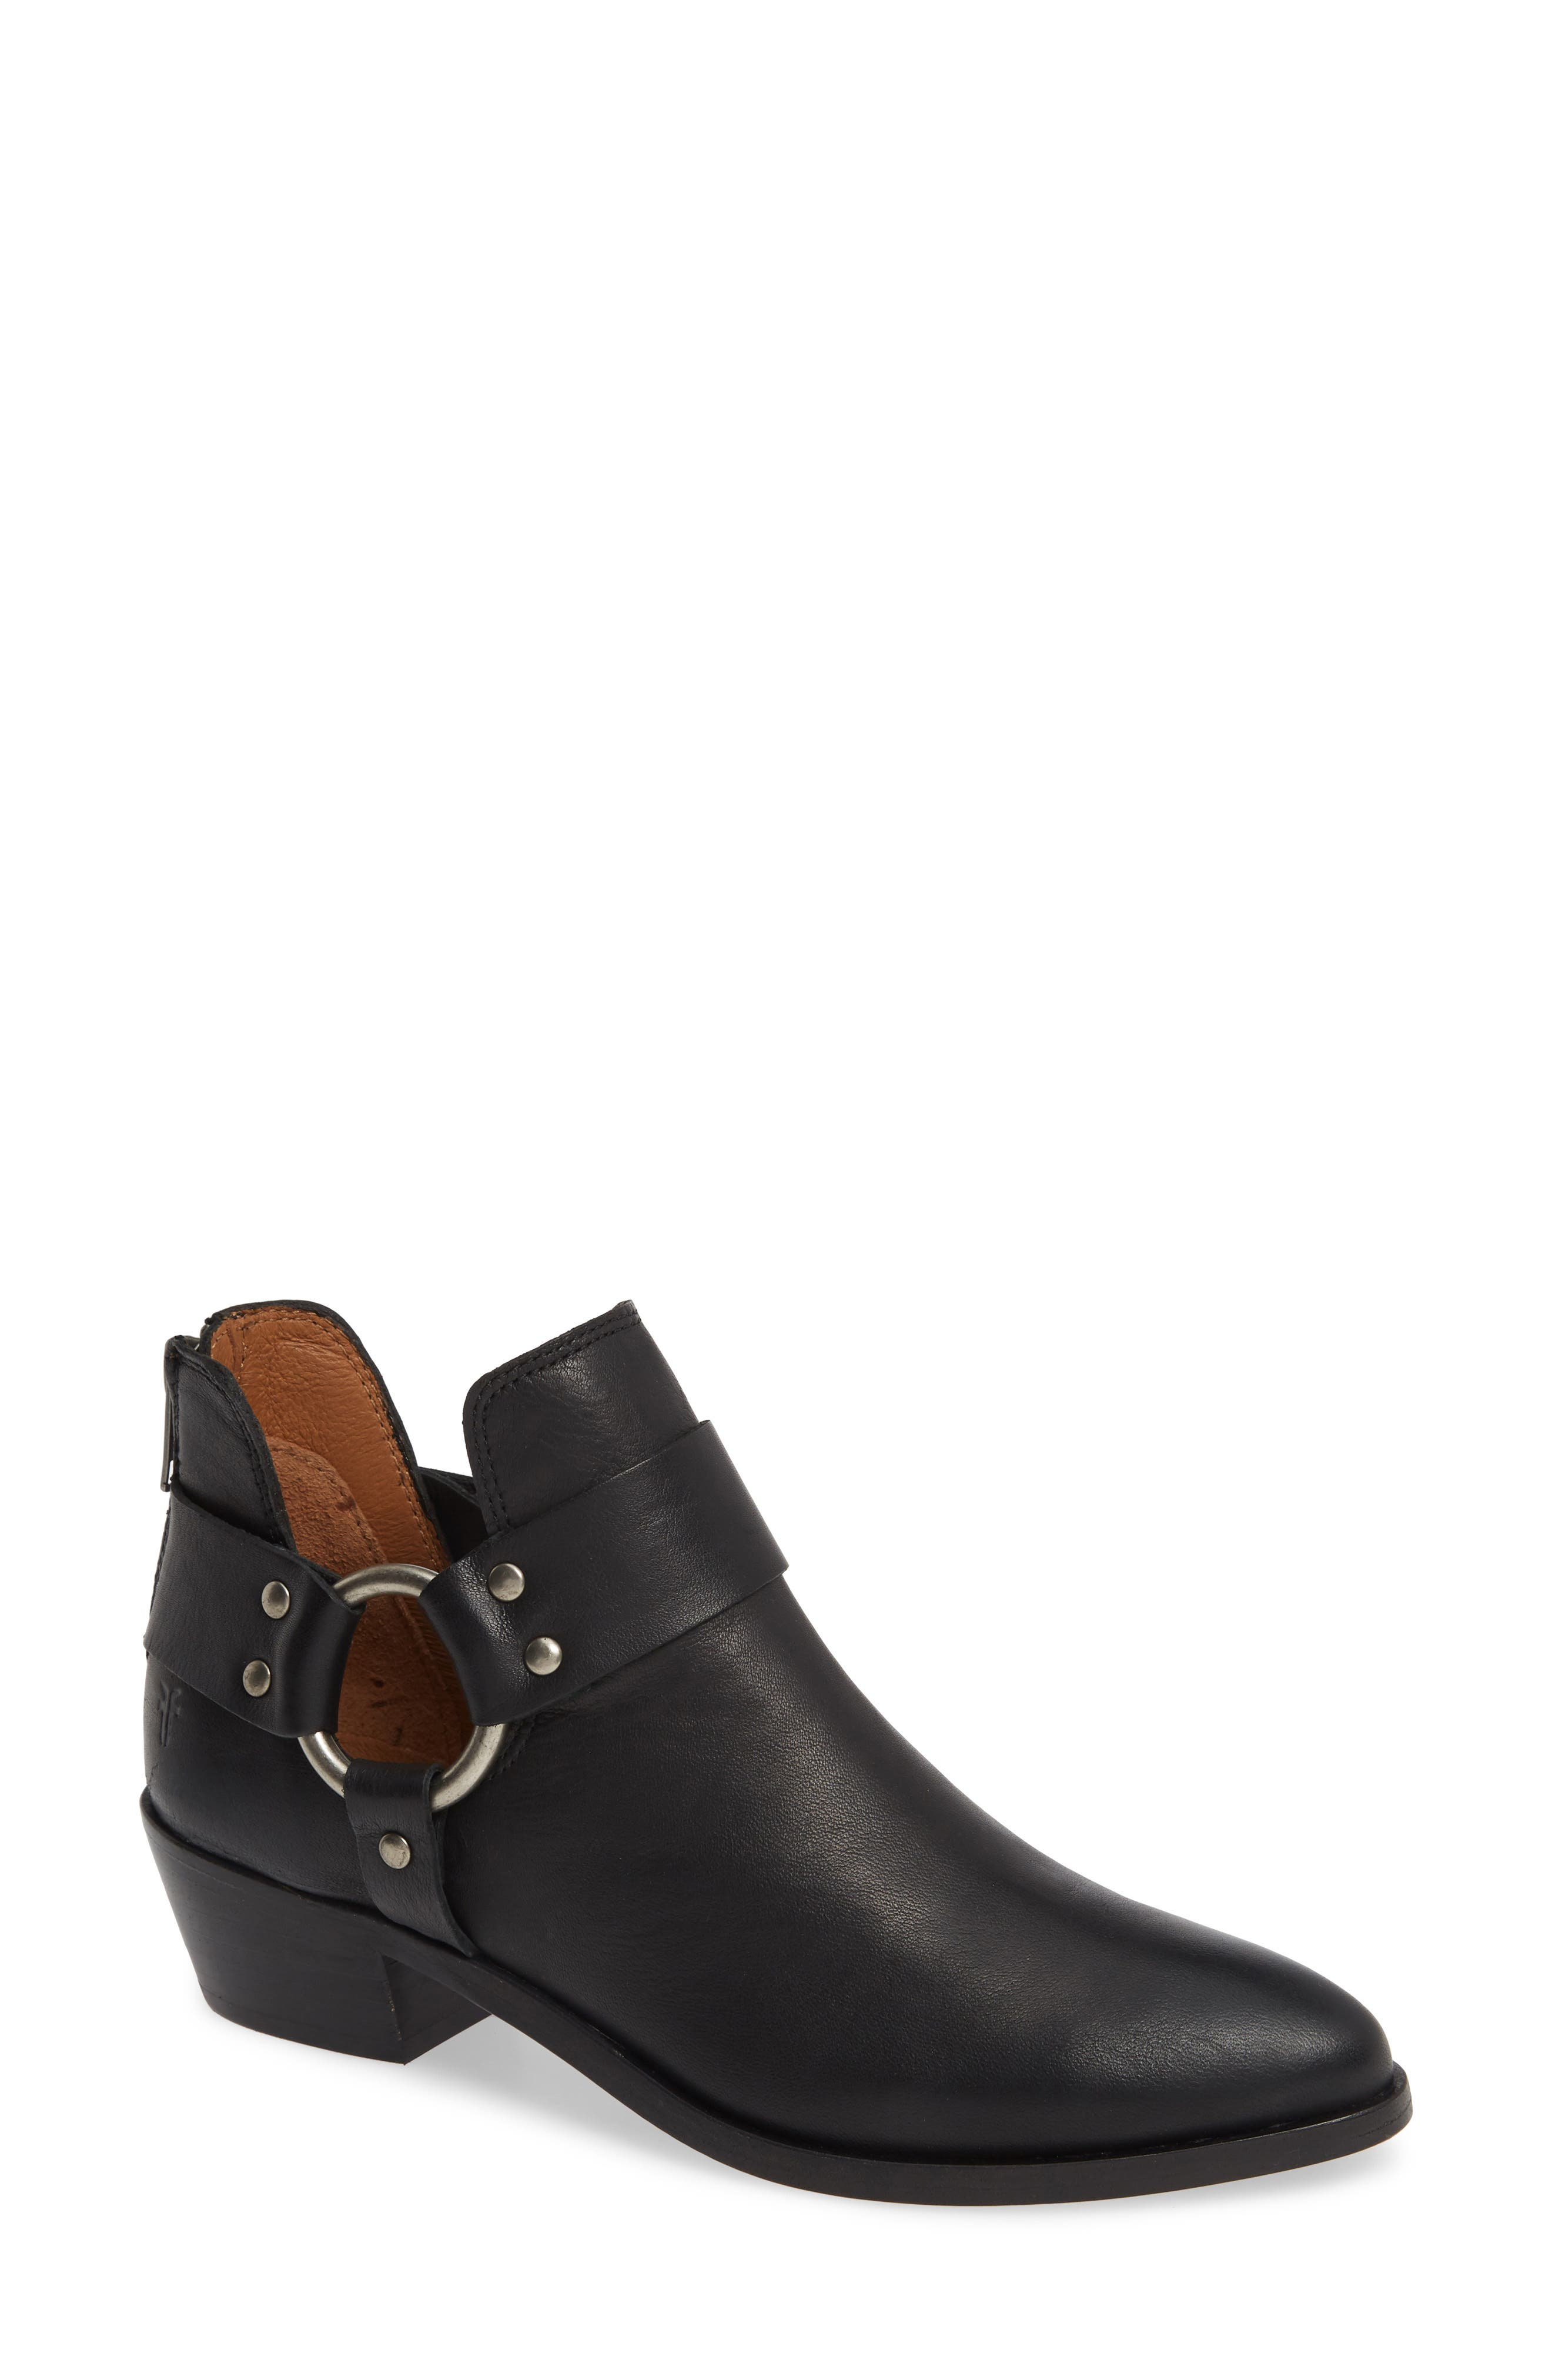 FRYE, Ray Low Harness Bootie, Main thumbnail 1, color, BLACK